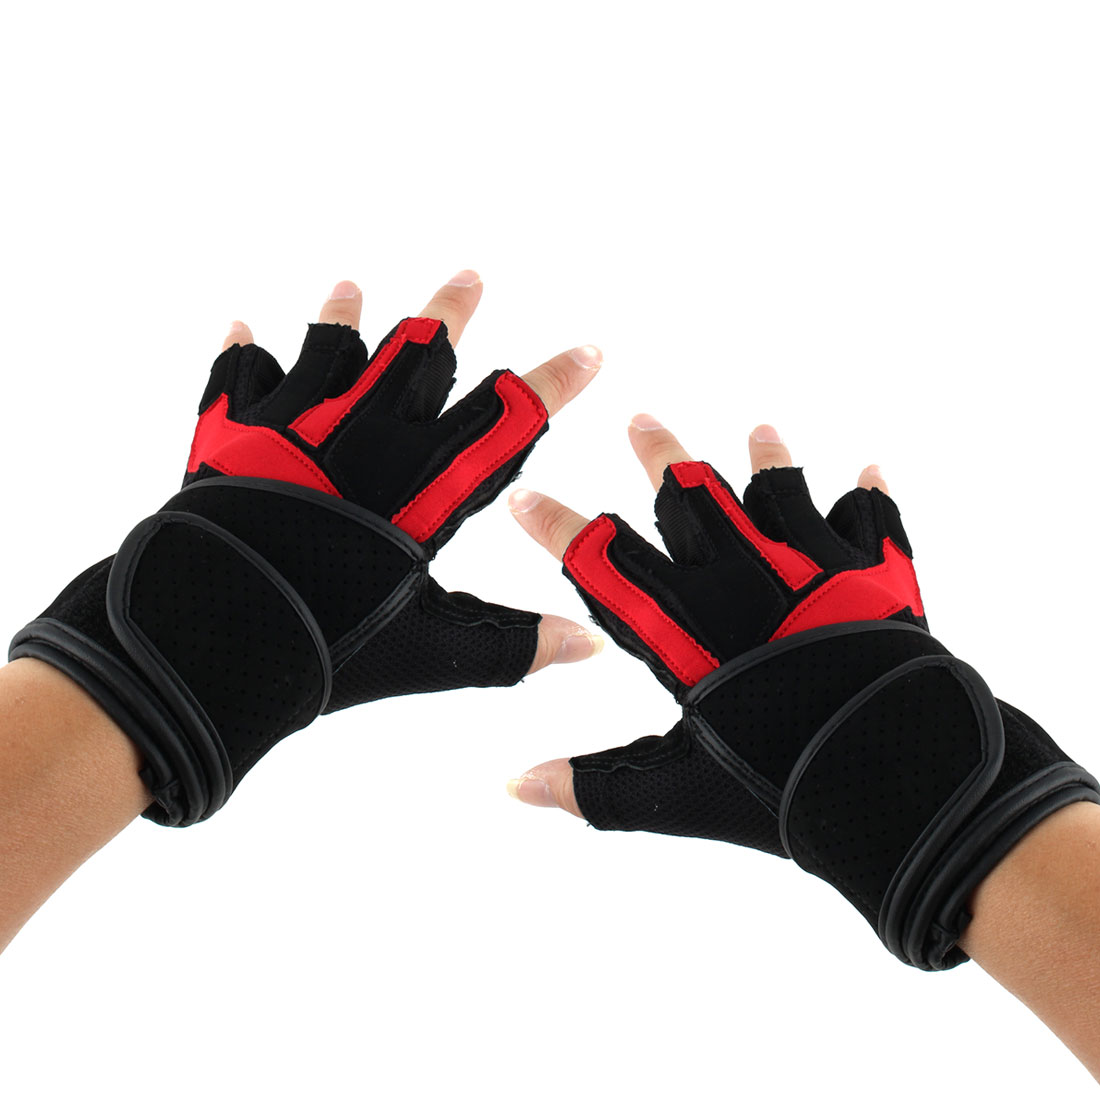 Men PU Leather Adjustable Sports Training Workout Half Finger Fitness Gloves Red M Pair